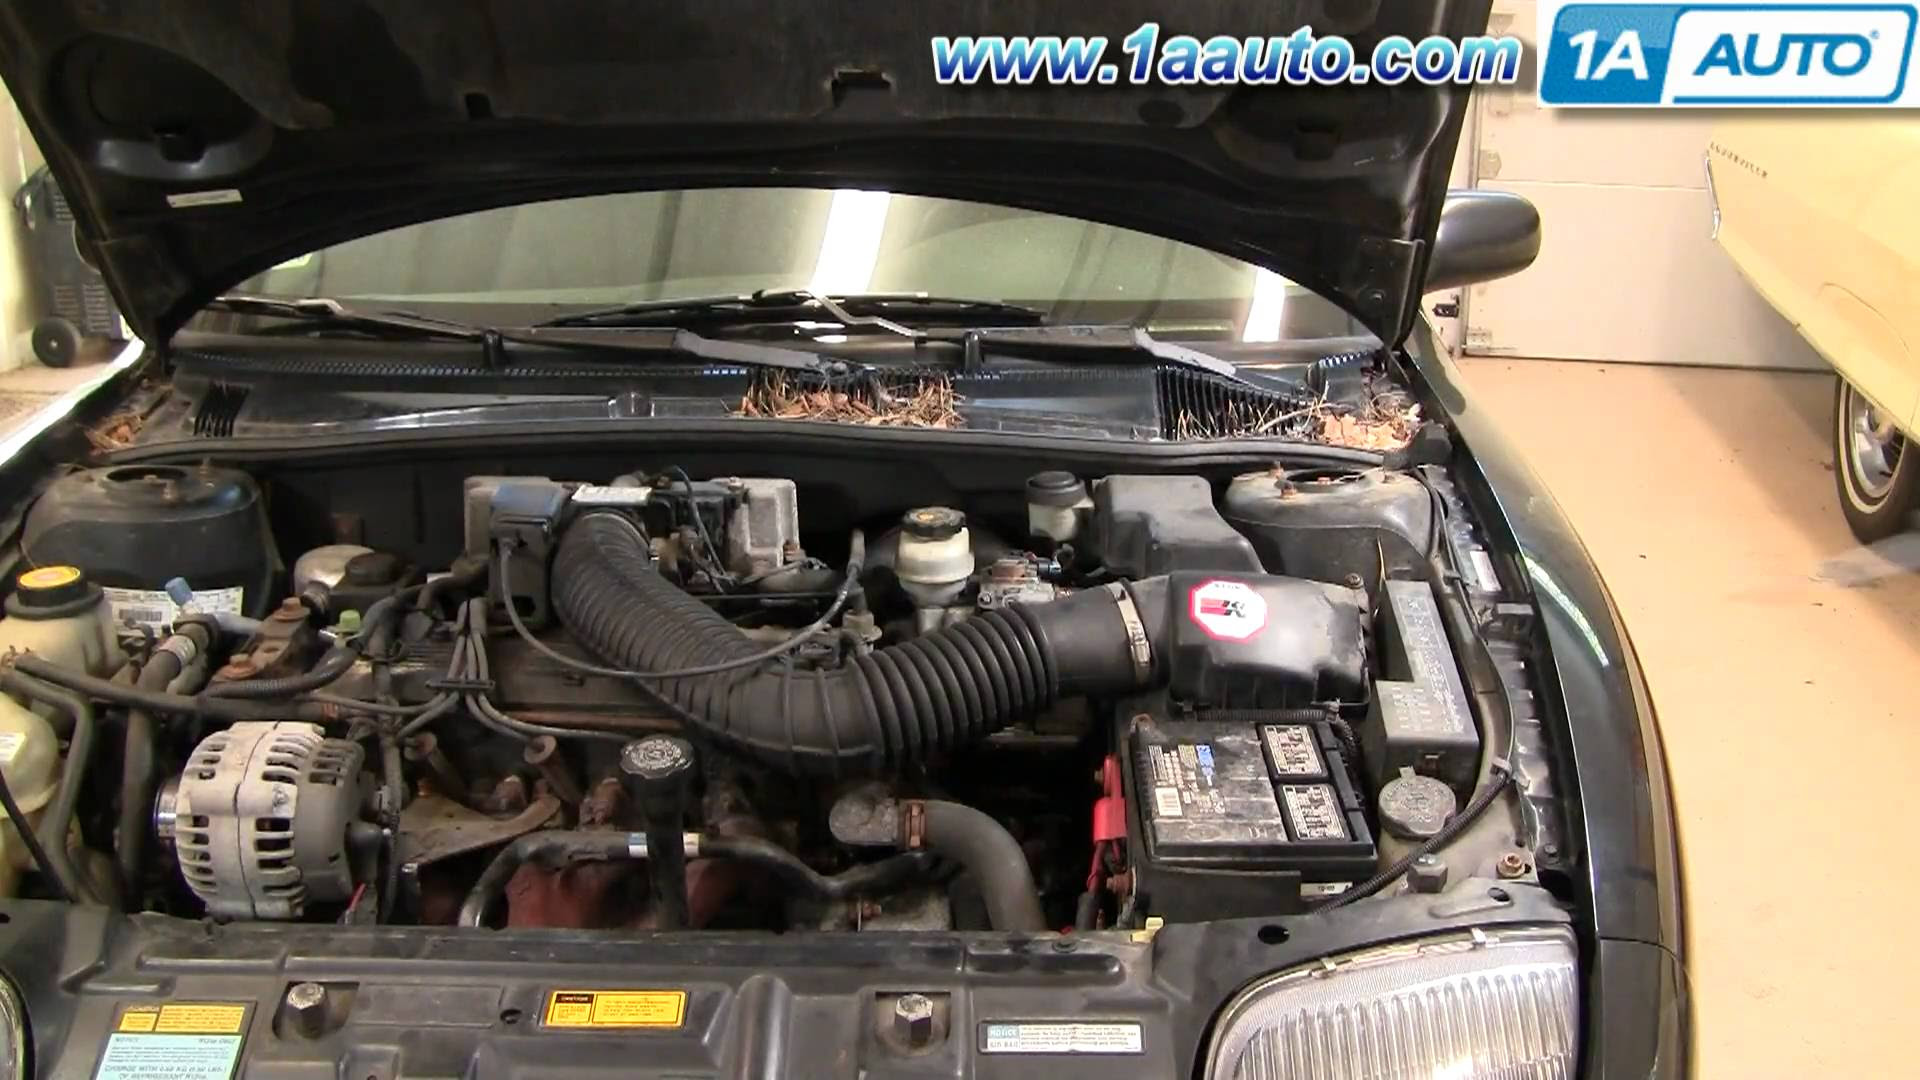 Diagram Diagram 2000 Chevy Cavalier Cooling System Diagram Full Version Hd Quality System Diagram Mapgavediagram Nuitdeboutaix Fr